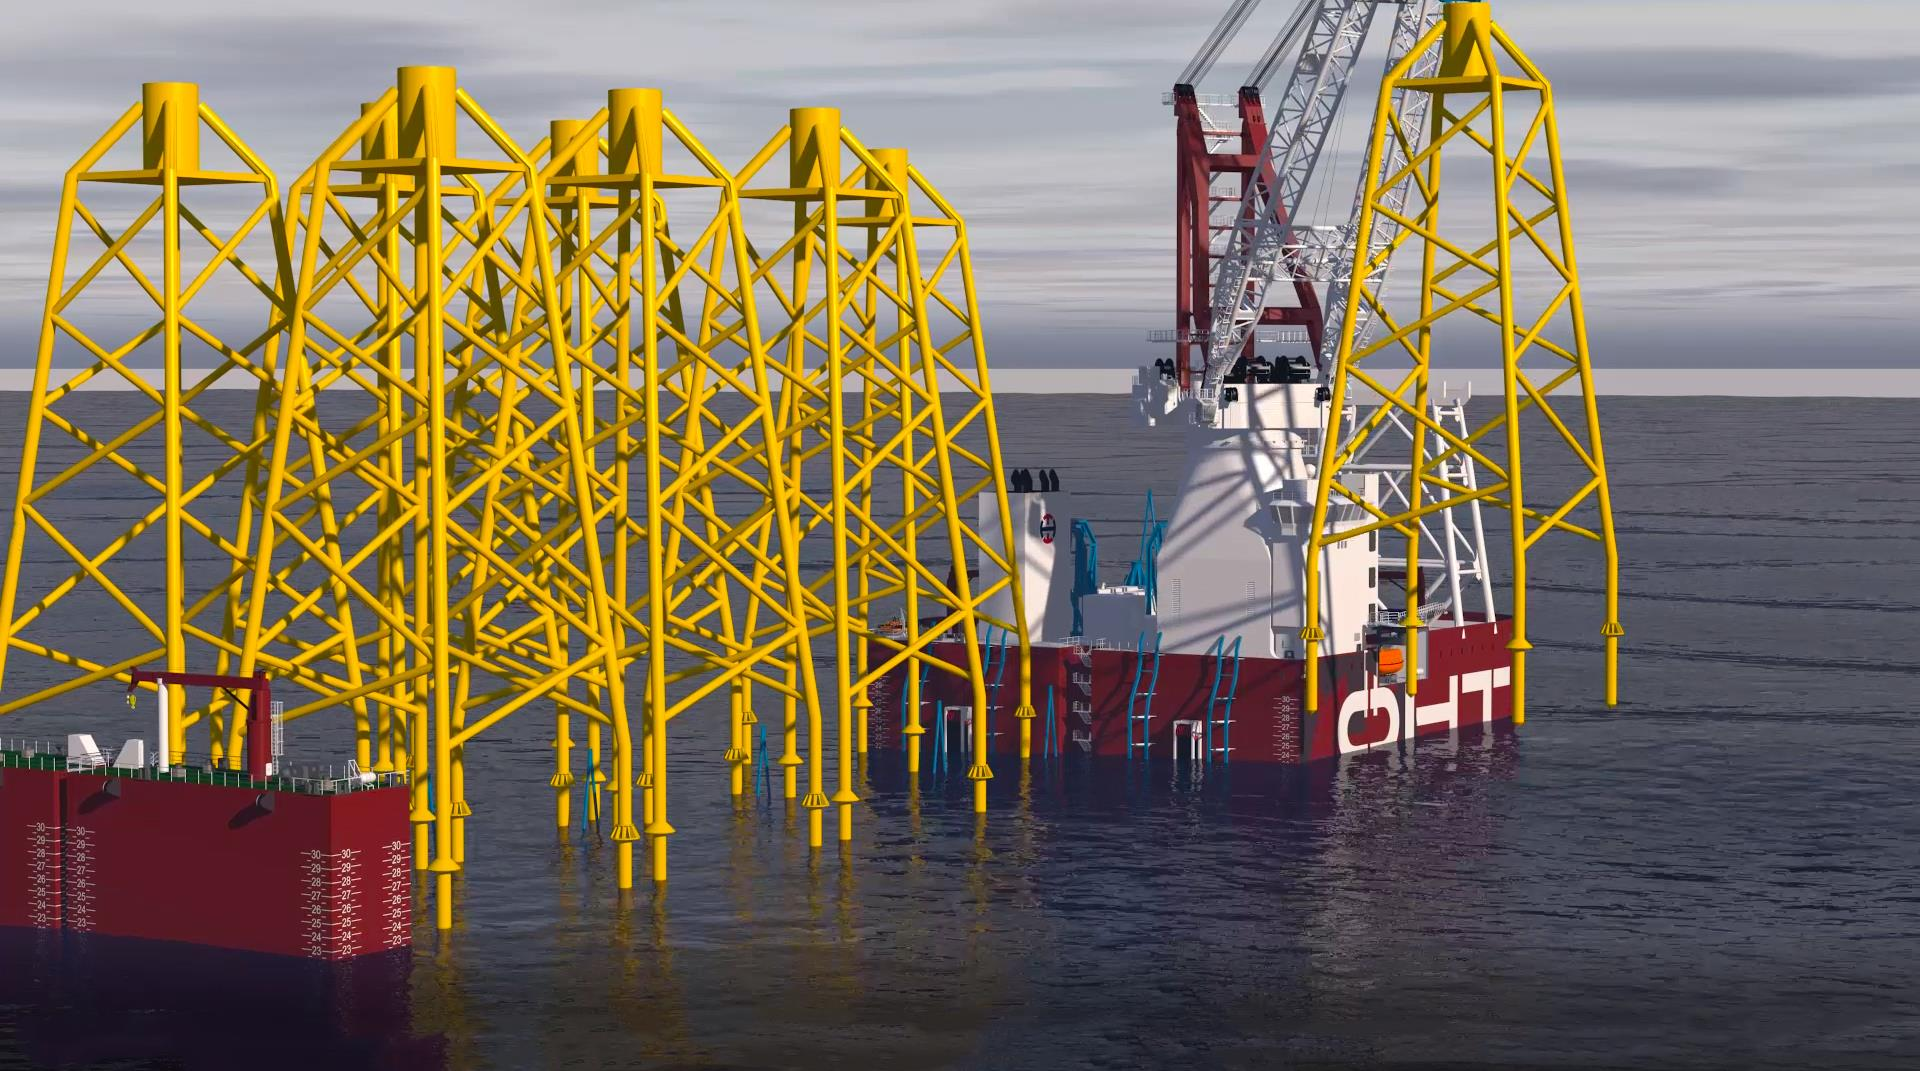 Photo credit: Offshore Heavy Transport (OHT)